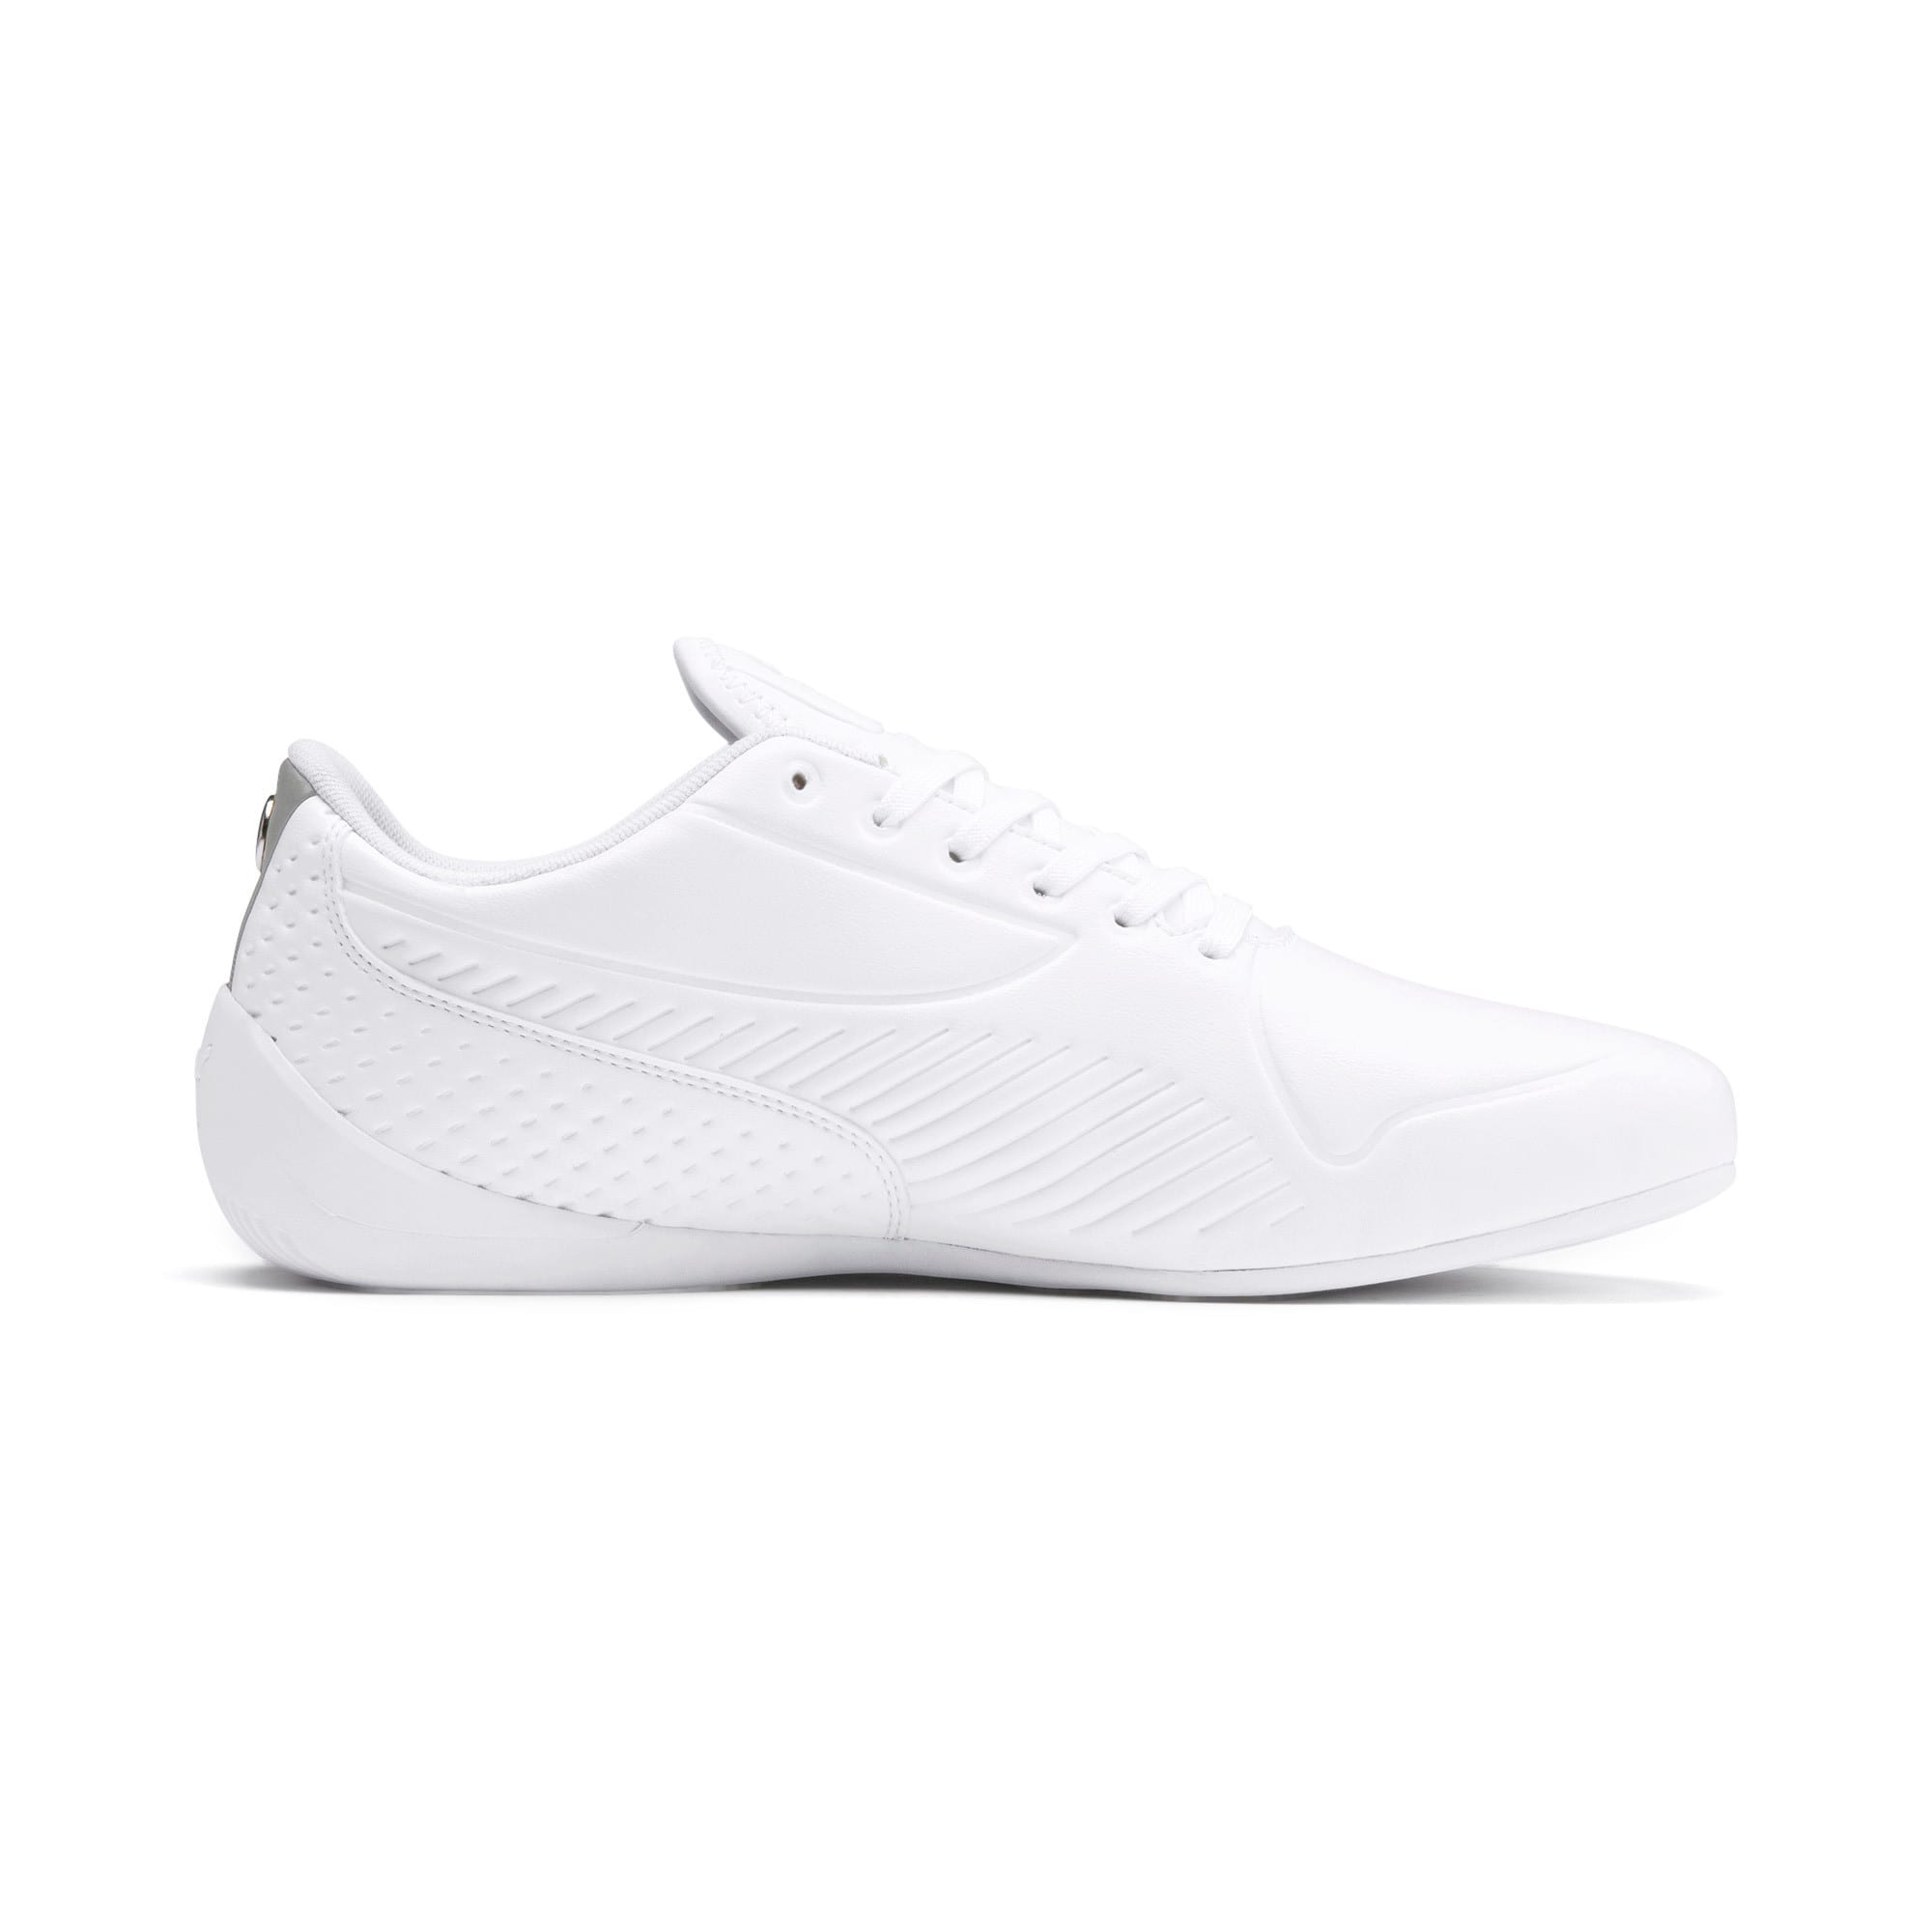 Thumbnail 6 of BMW M Motorsport Drift Cat 7S Ultra Shoes, Puma White-Puma Black, medium